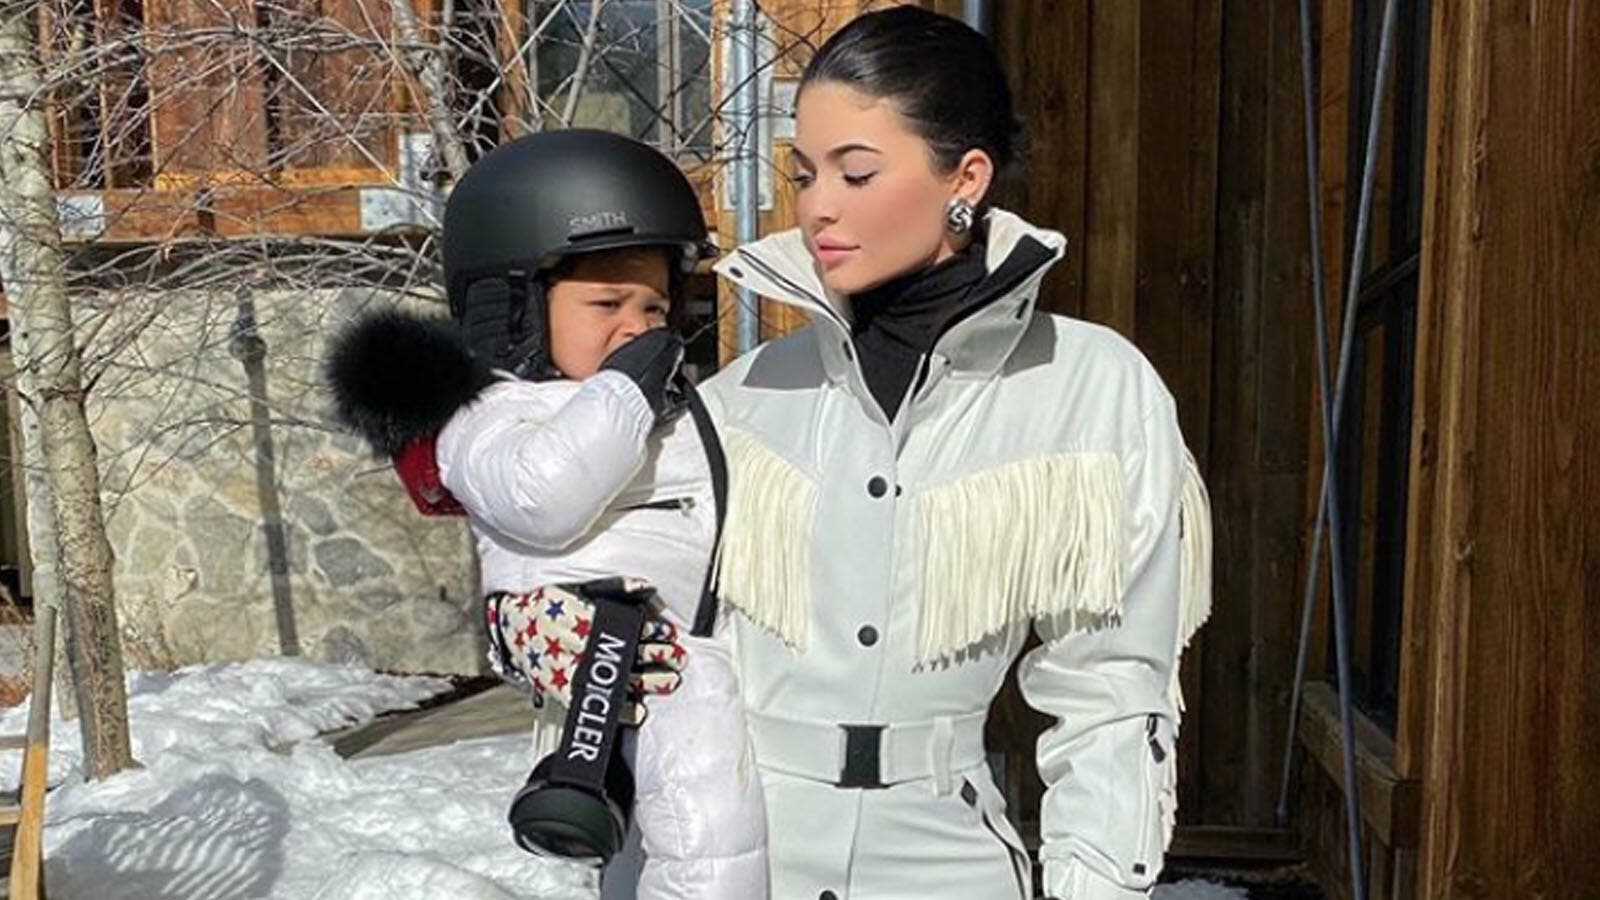 Kylie Jenner's Daughter Stormi Gifted Life-Size Playhouse By Grandma Kris